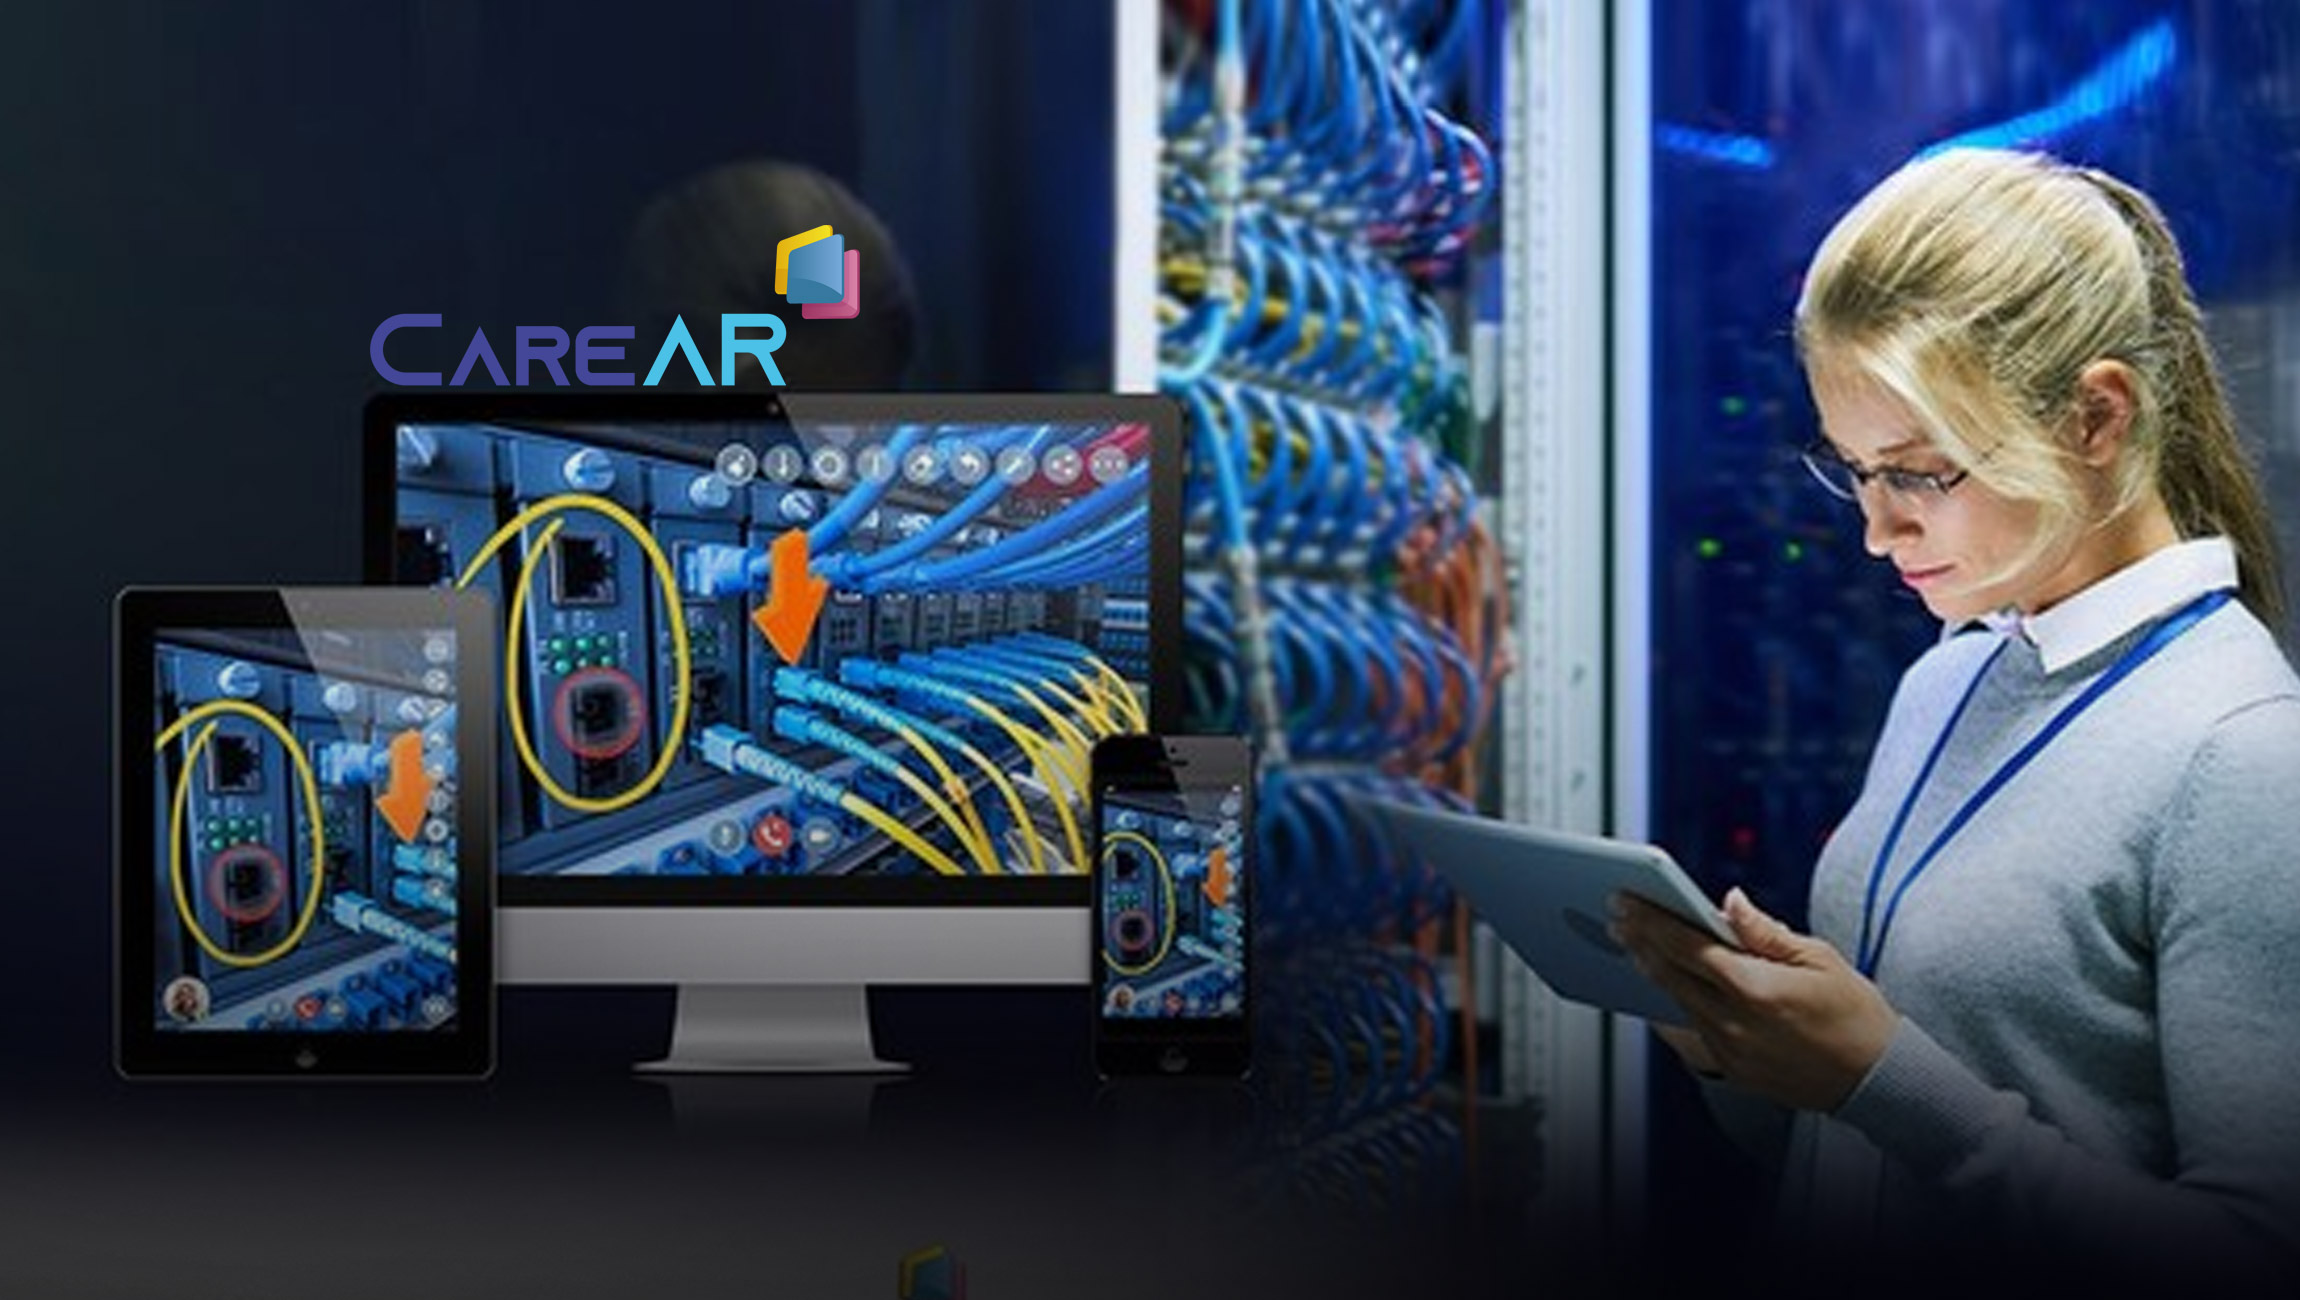 CareAR Announces Augmented Reality Integration with ServiceNow